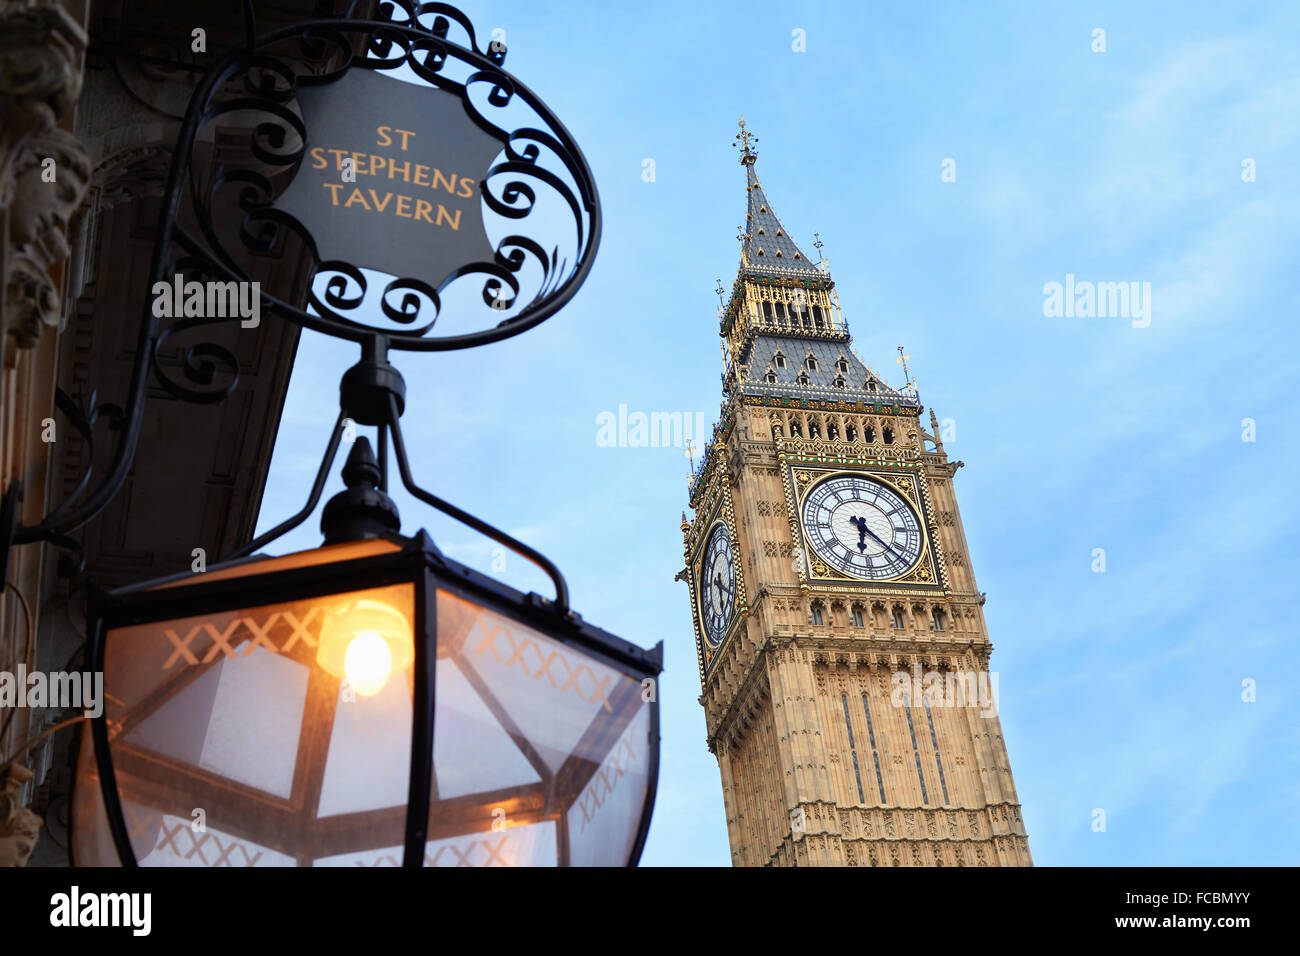 Big Ben and old St Stephens tavern lamp, blue sky in London - Stock Image